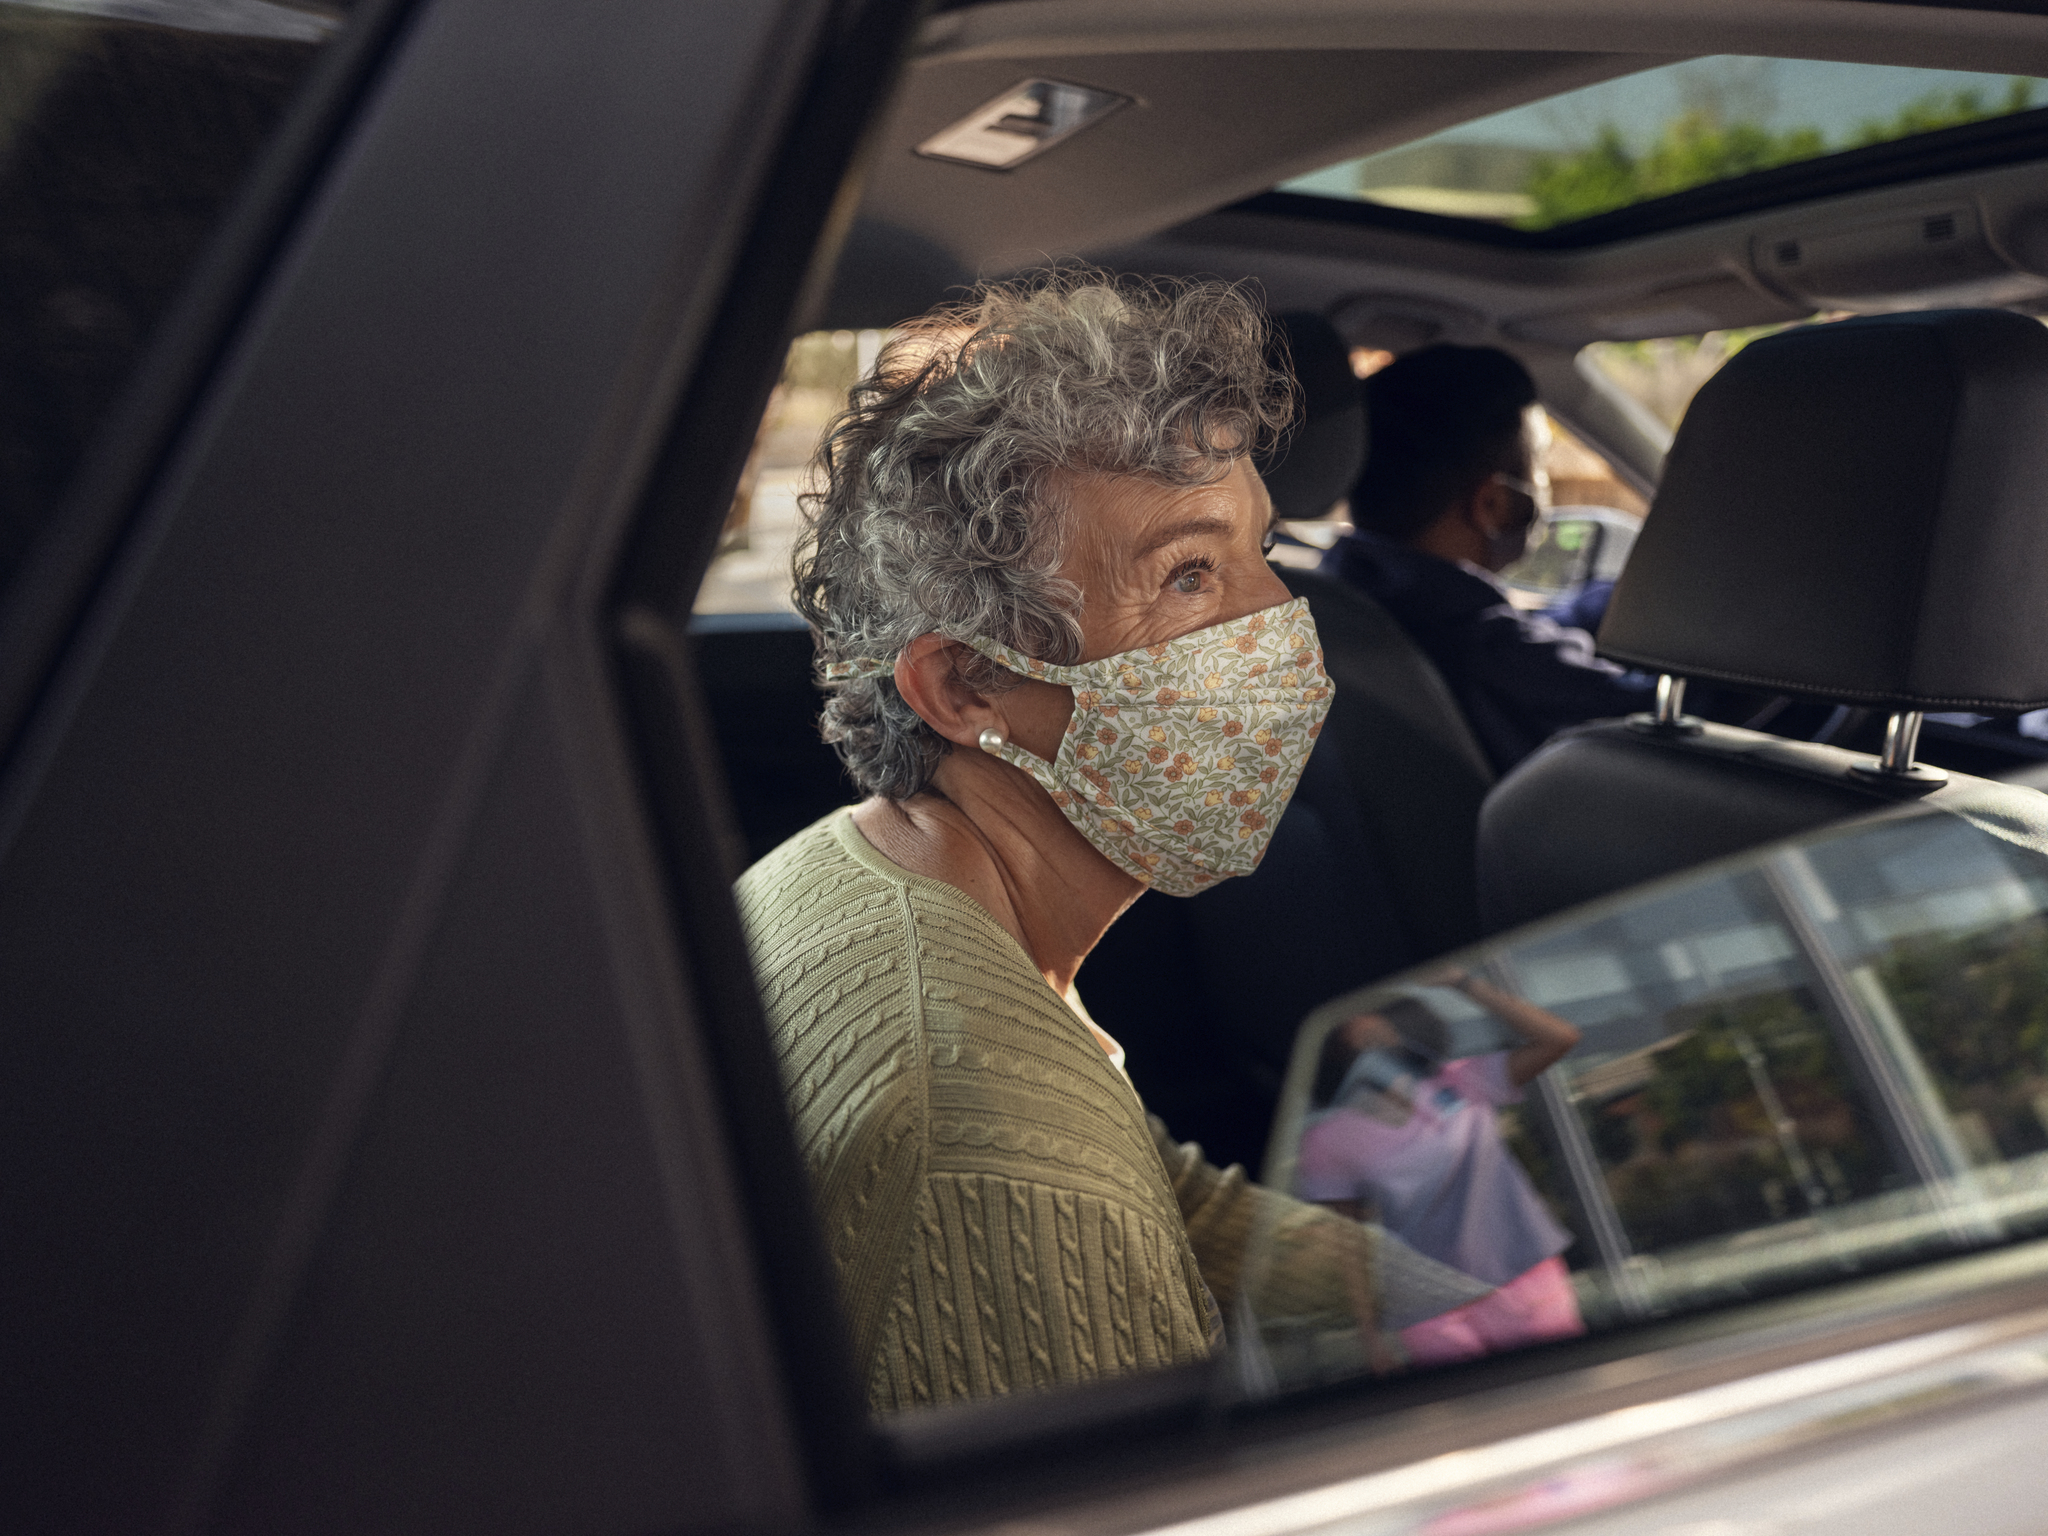 A passenger wearing a mask in the backseat of a car